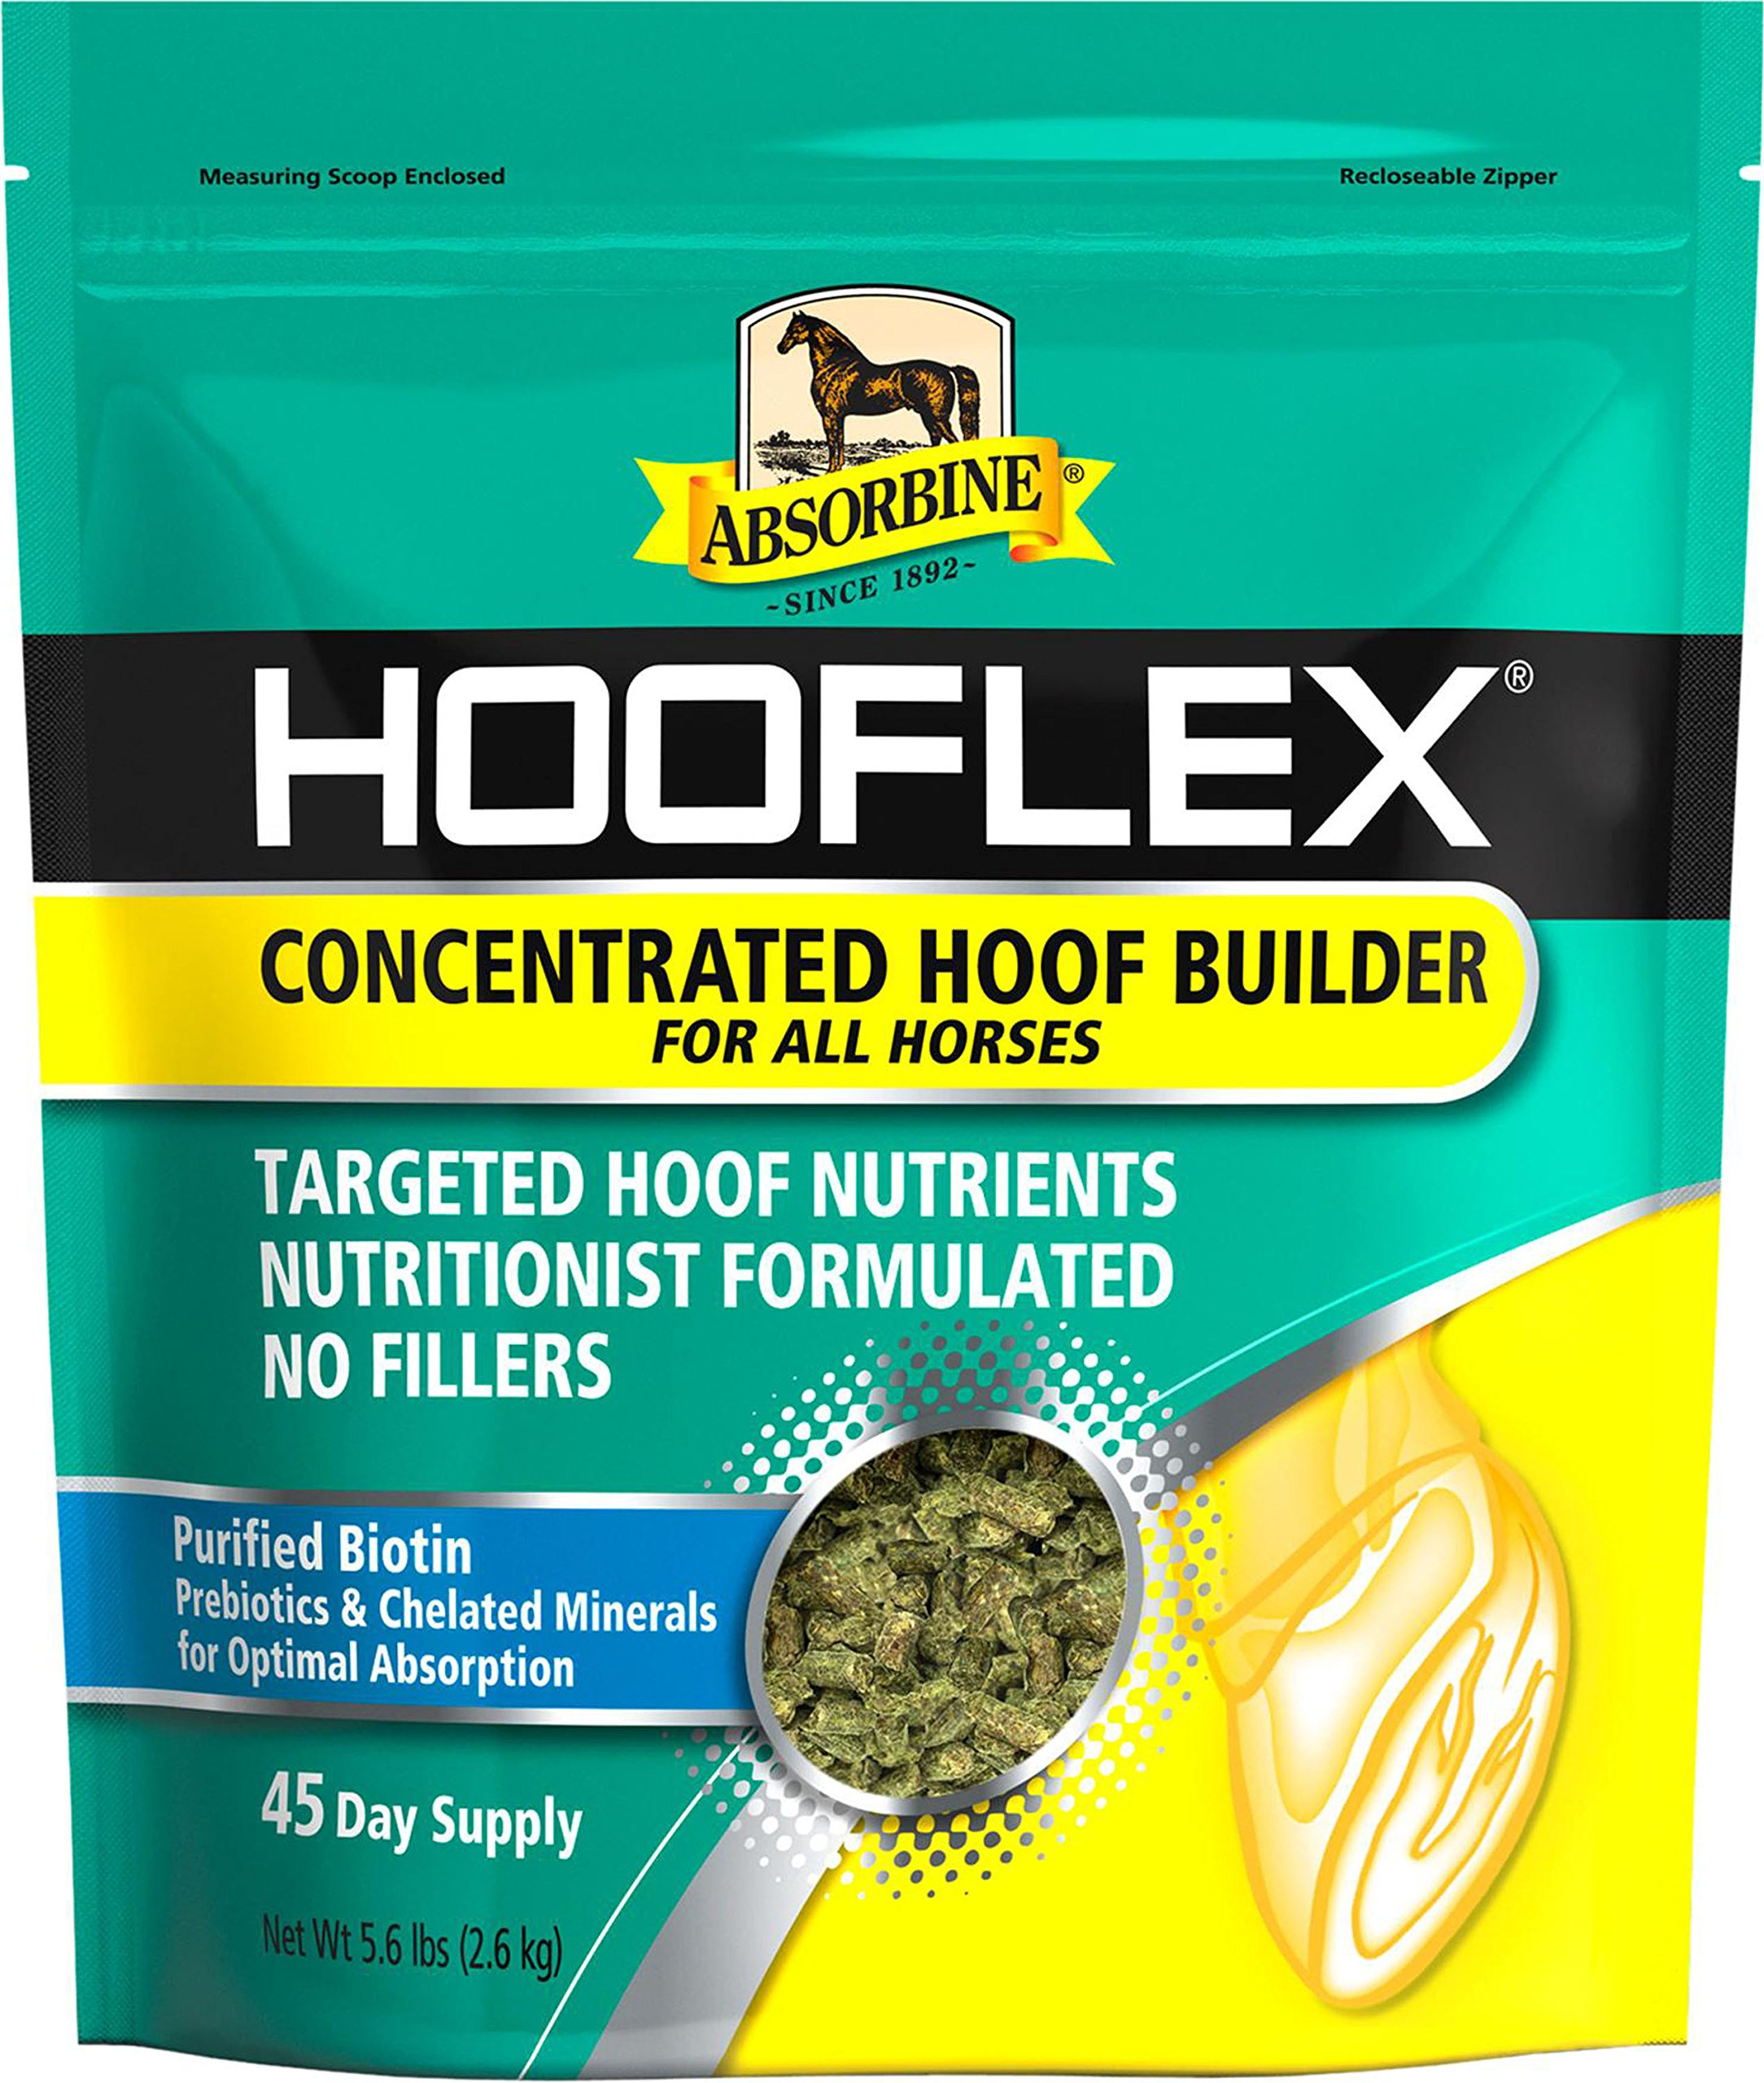 W F YOUNG INC Absorbine Hooflex Concentrated Hoof Builder 45 Day Supply